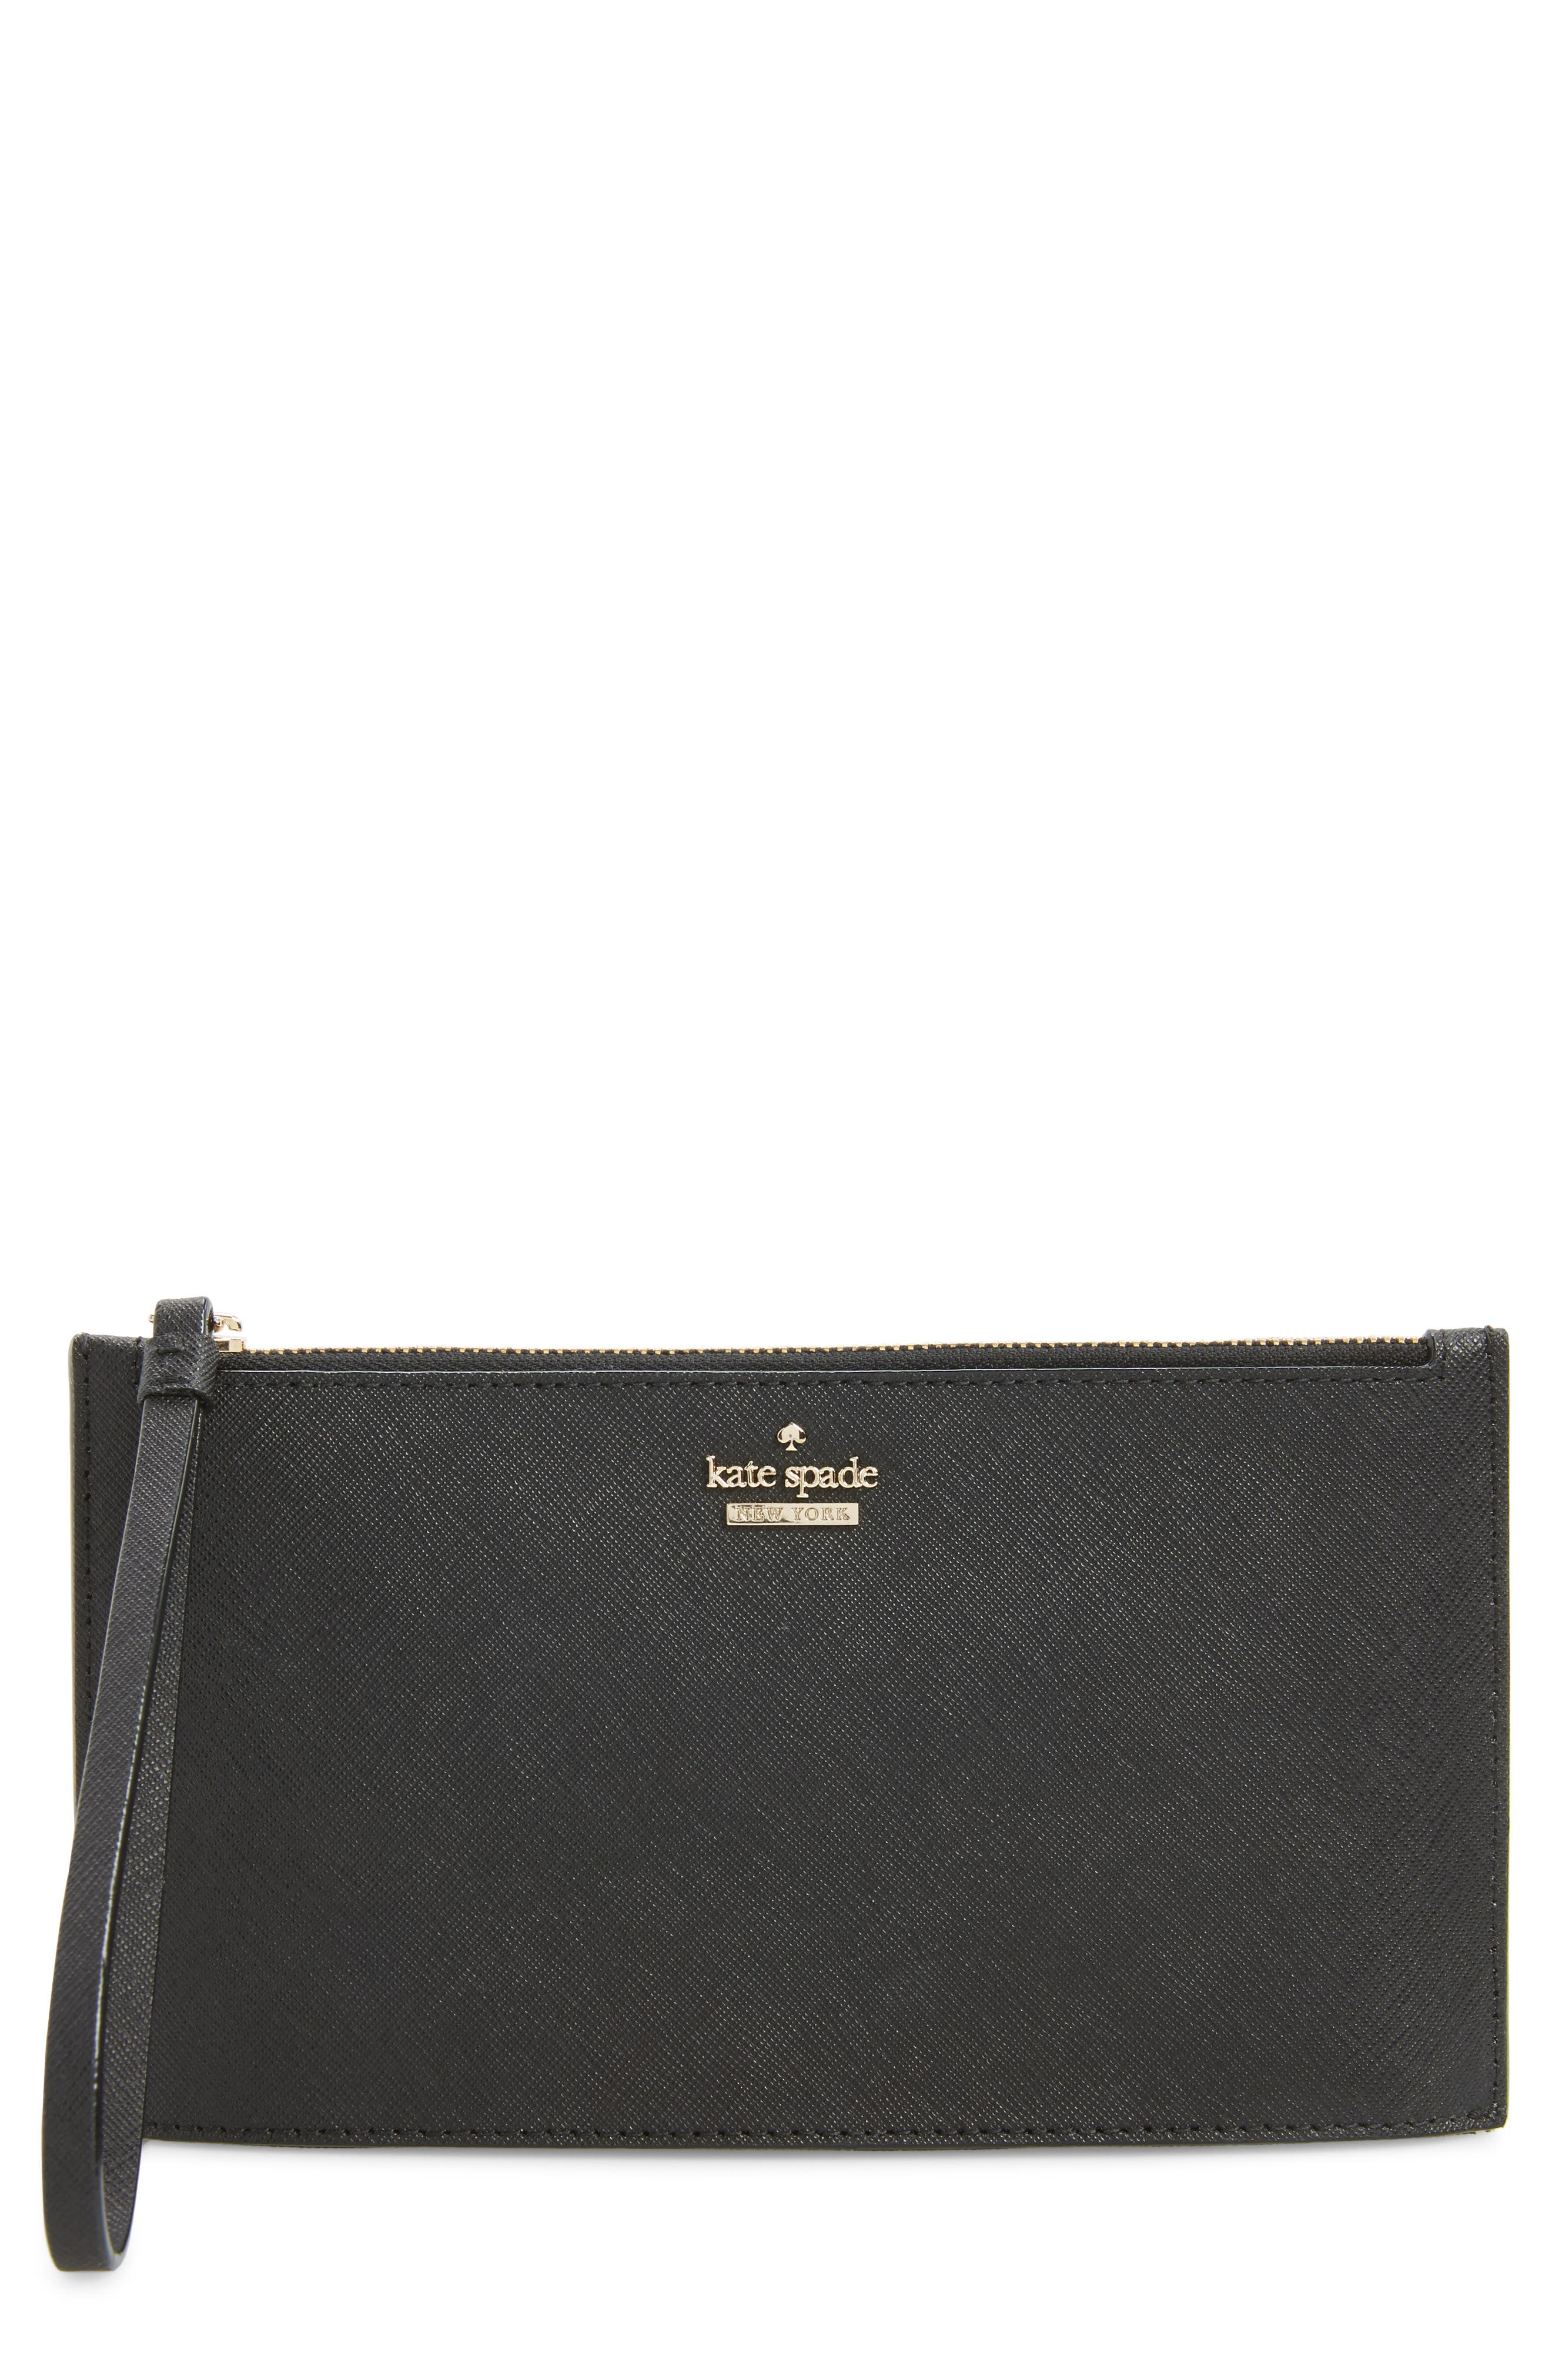 cameron street ariah leather wristlet,                         Main,                         color, Black